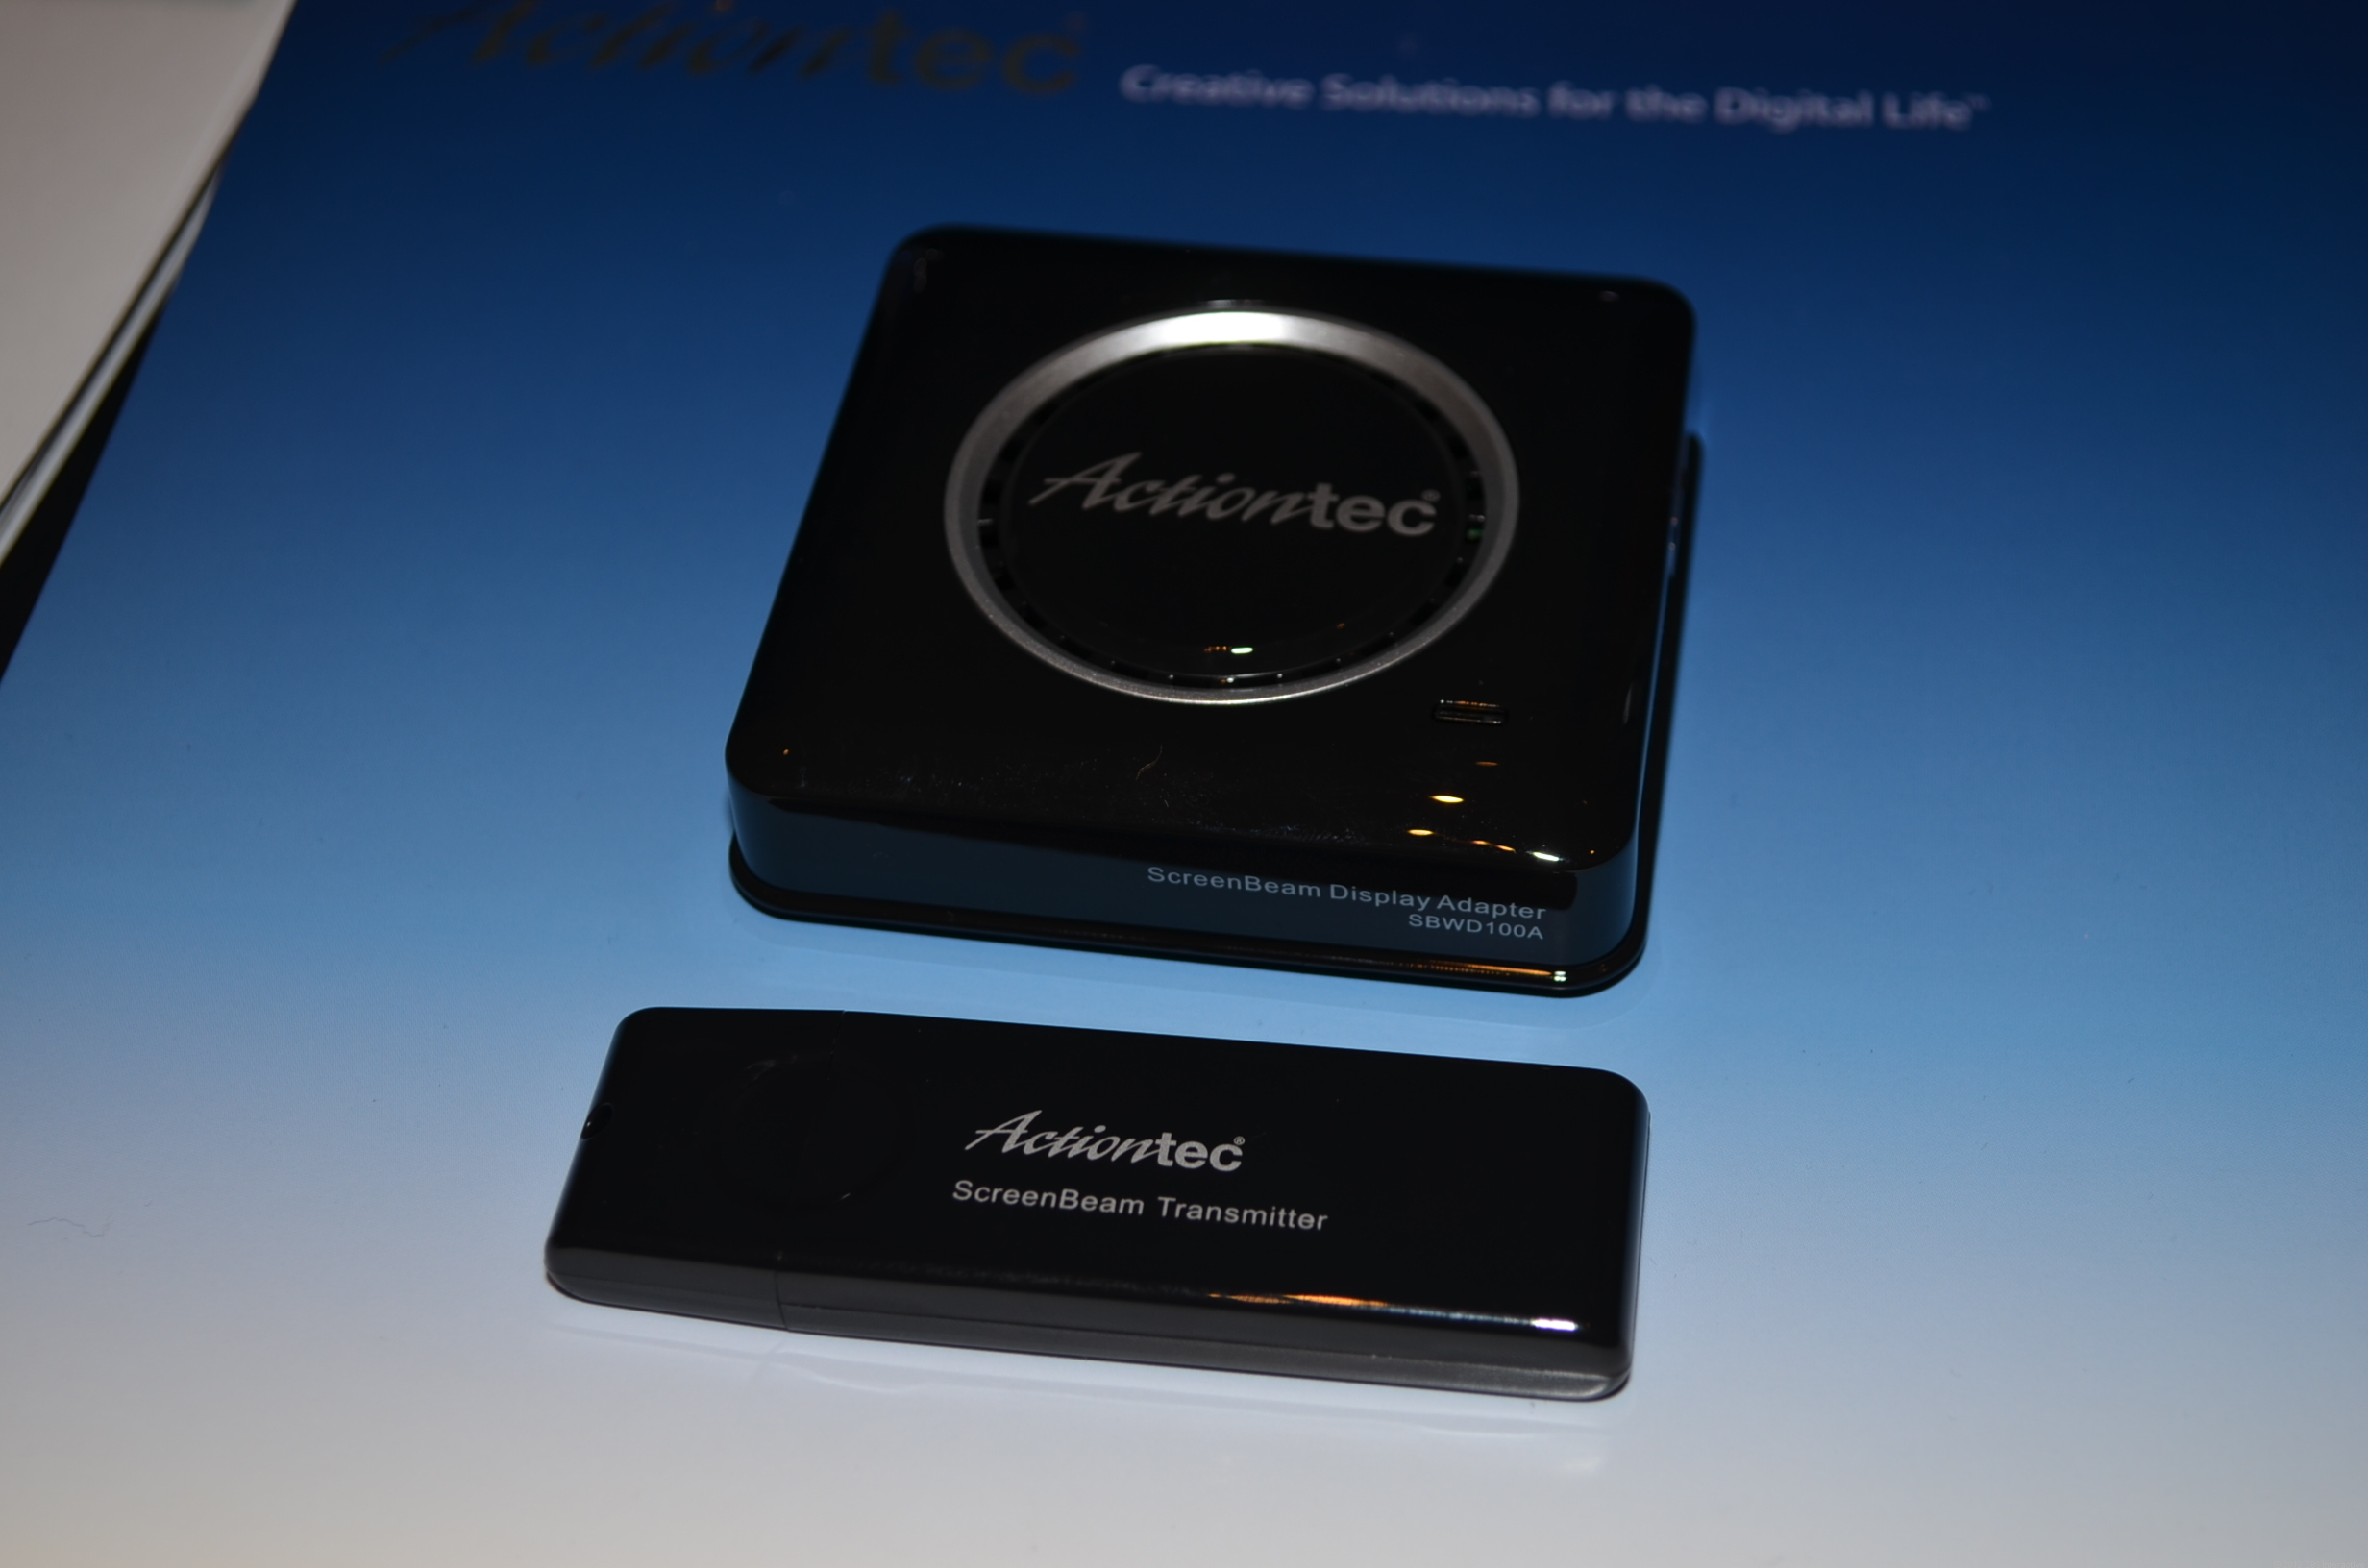 The ScreenBeam kit from Actiontec at CES 2013